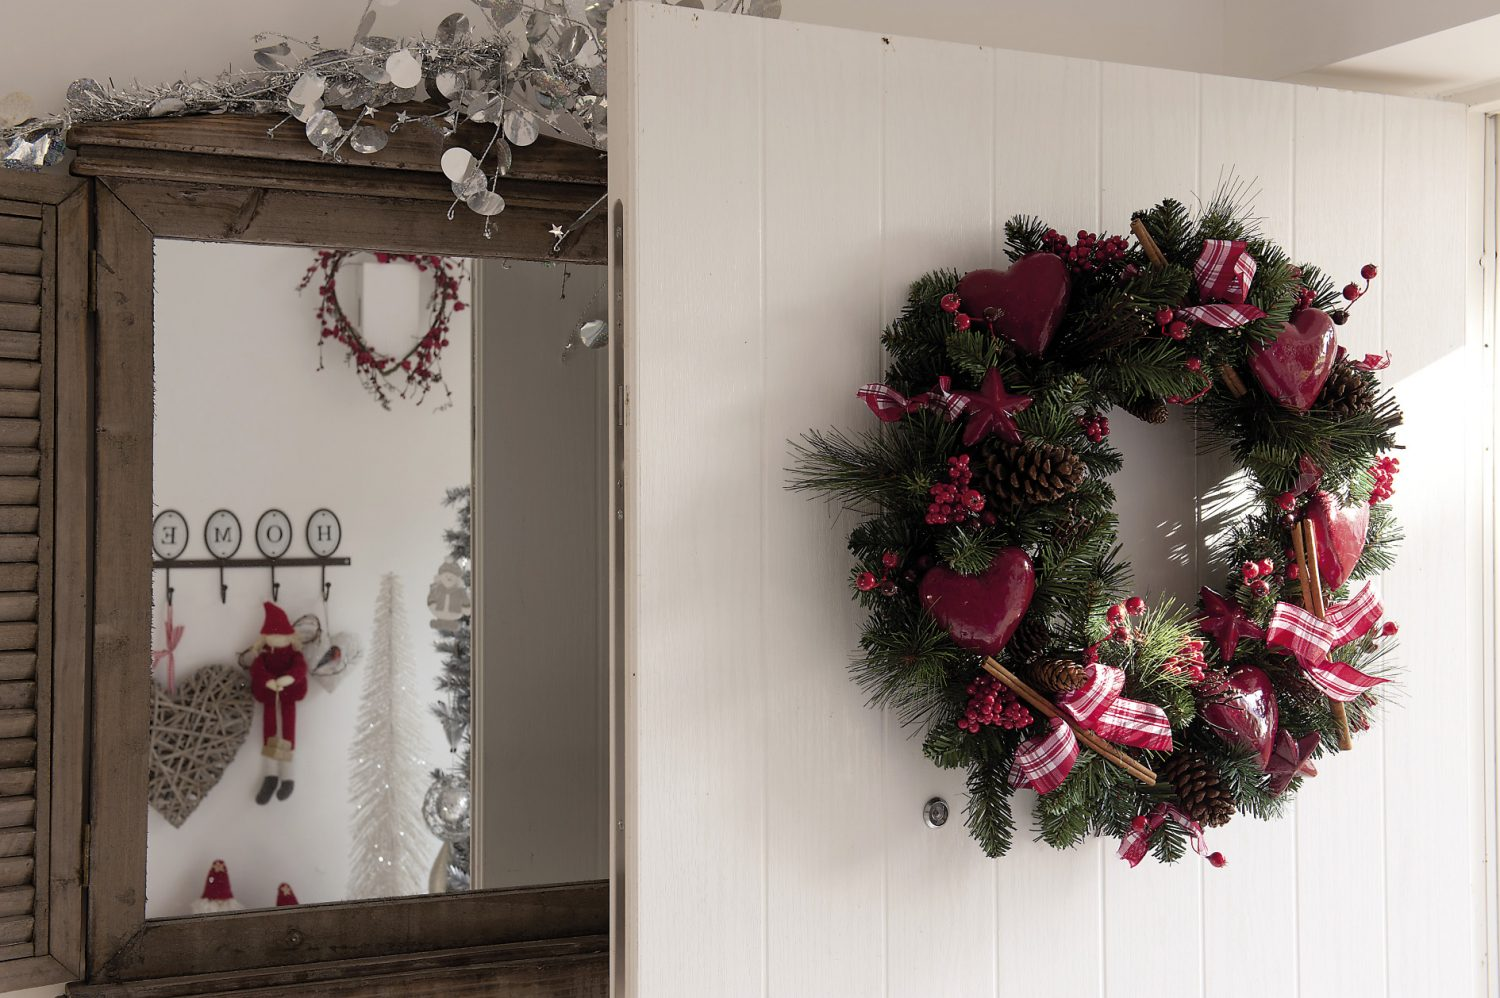 A huge wreath tied with a wide red and white ribbon welcomes visitors